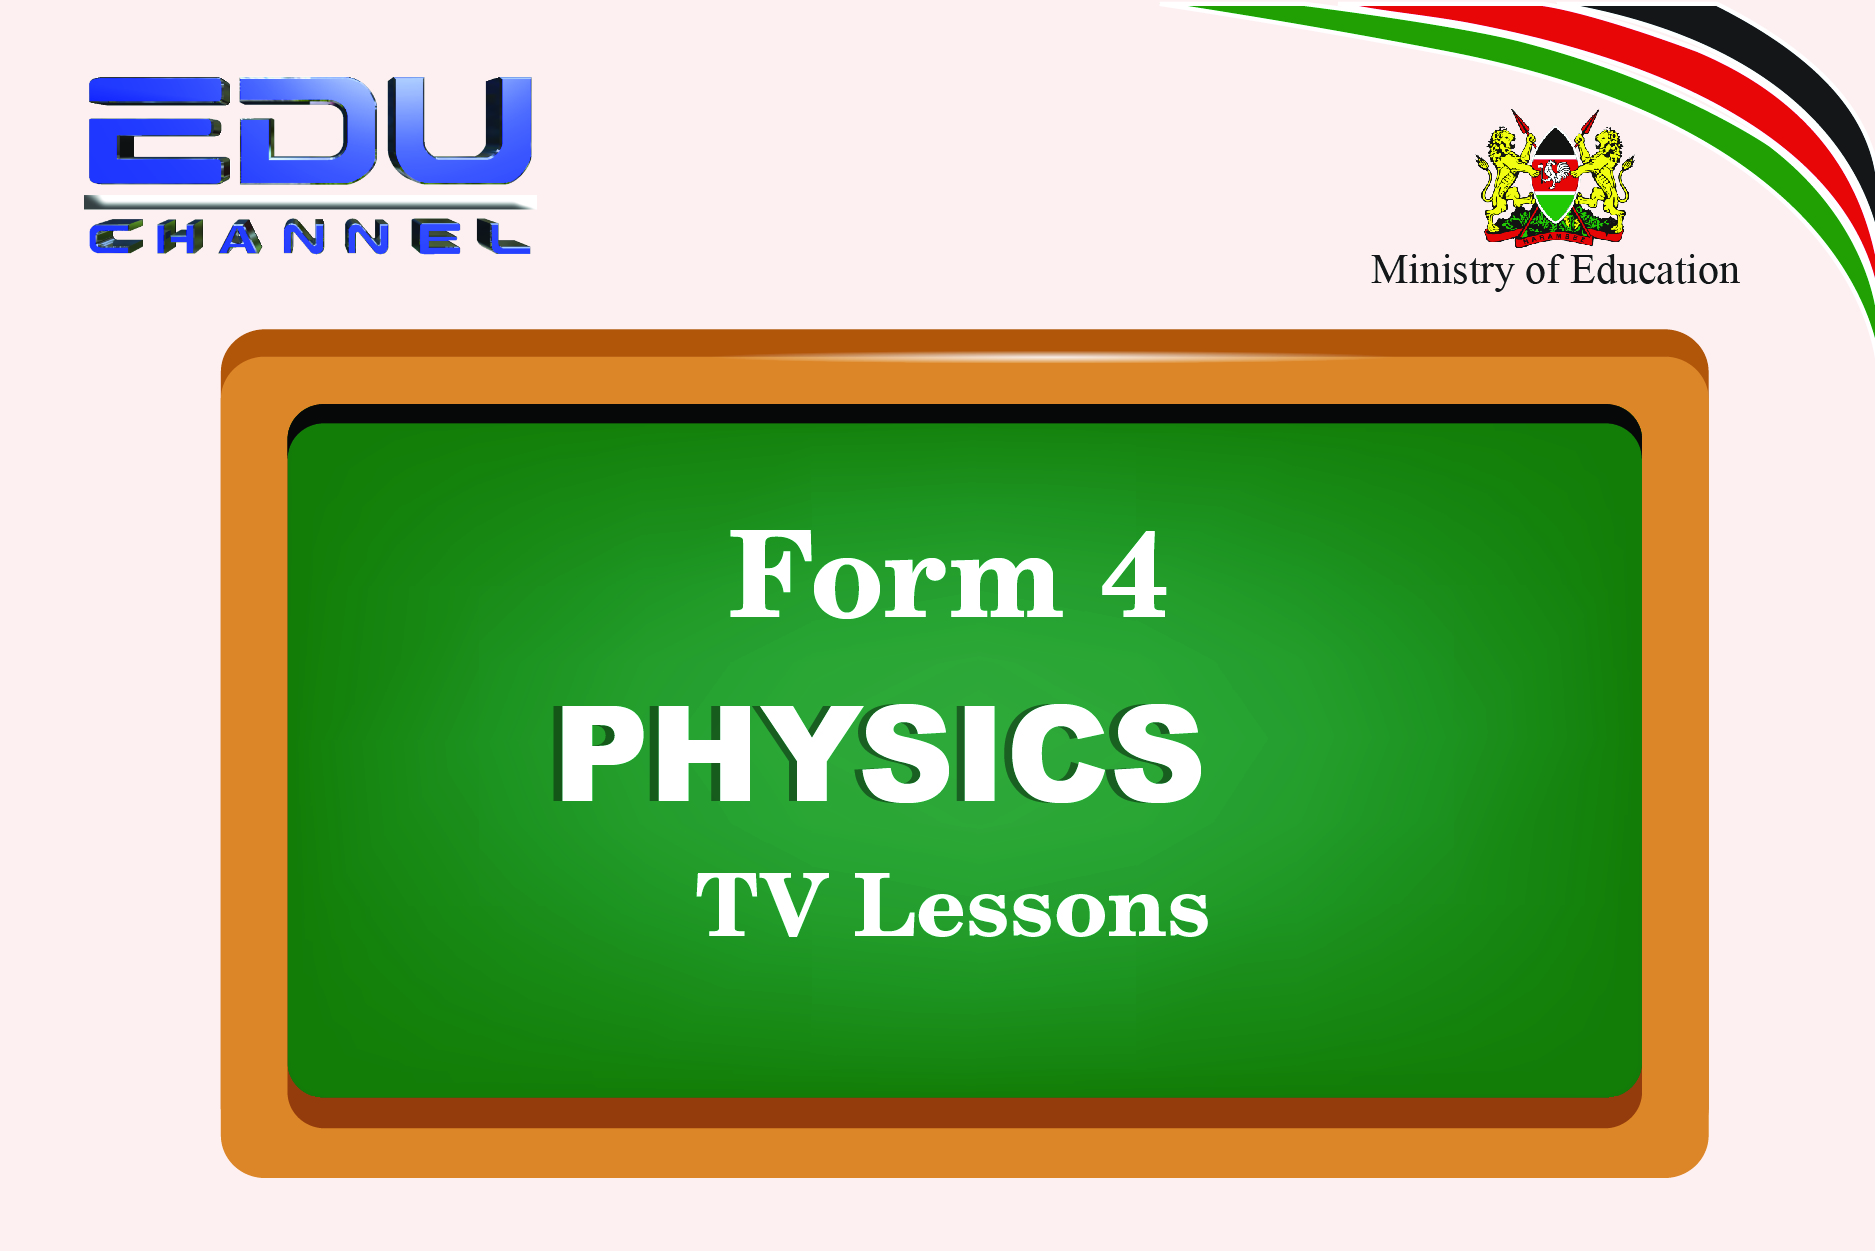 Form 4 physics Lesson 5: Main Electricity - Sources and transmission of electricity